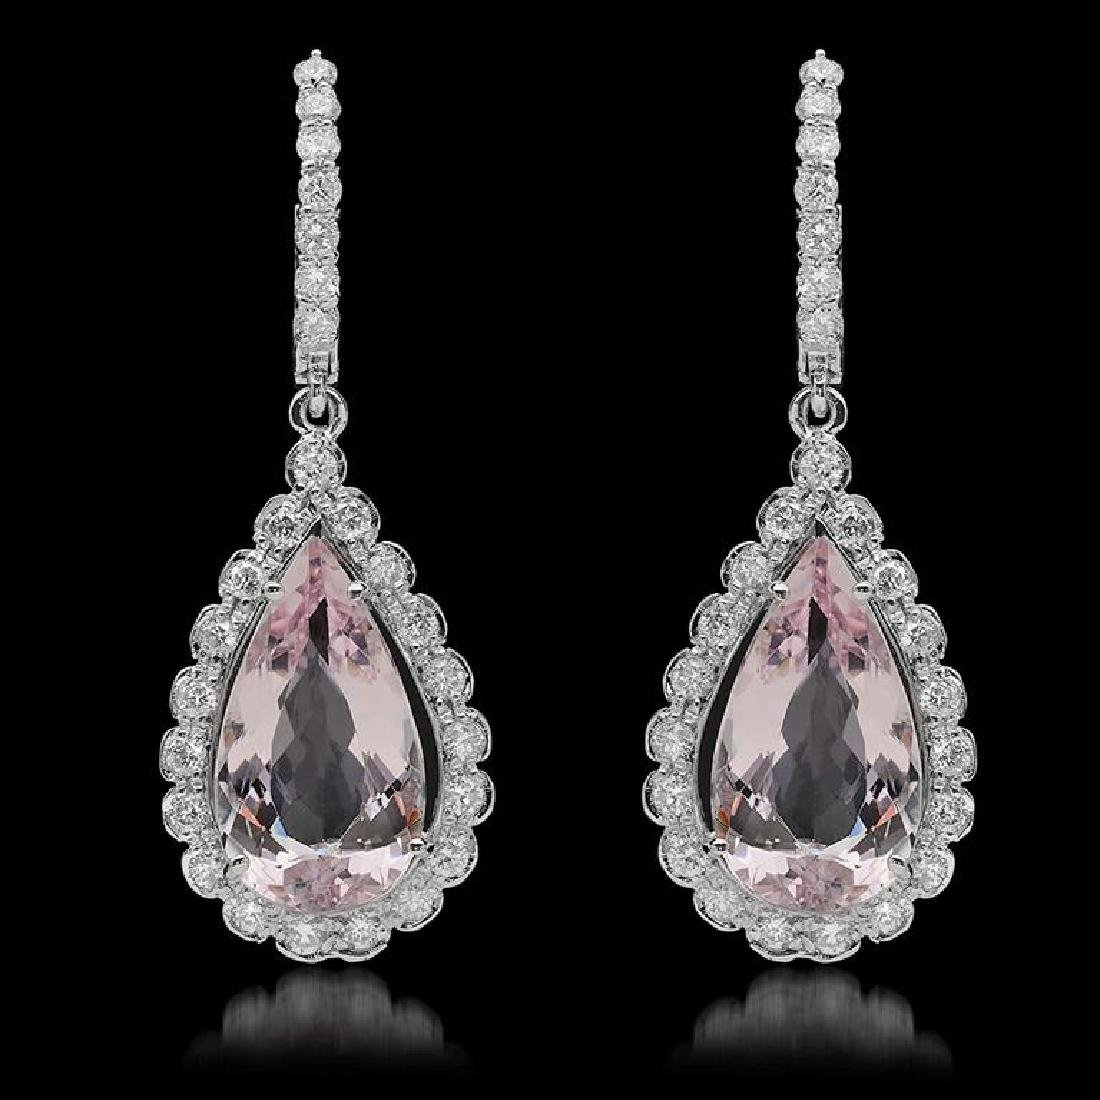 14K Gold 9.40ct Morganite & 1.65ct Diamond Earrings